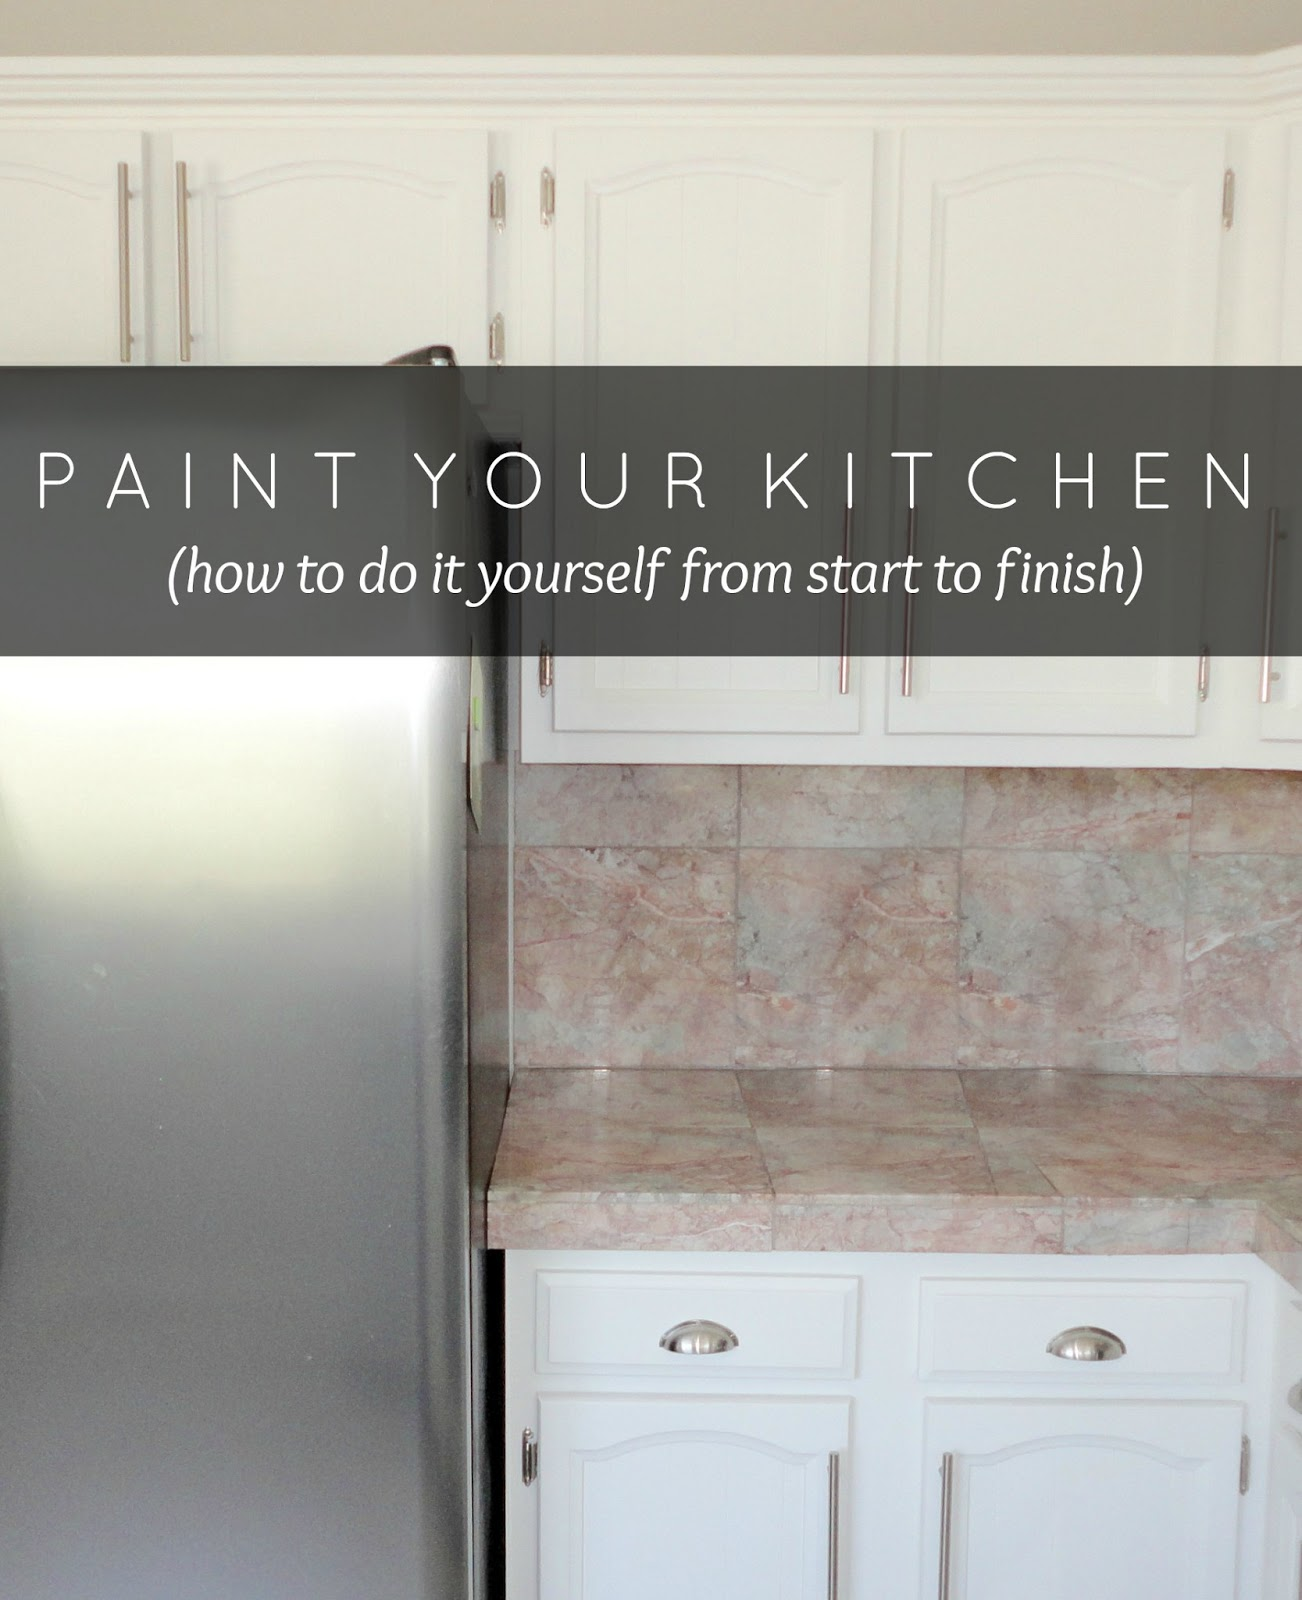 Do You Need To Hire A Professional Painter To Paint Your